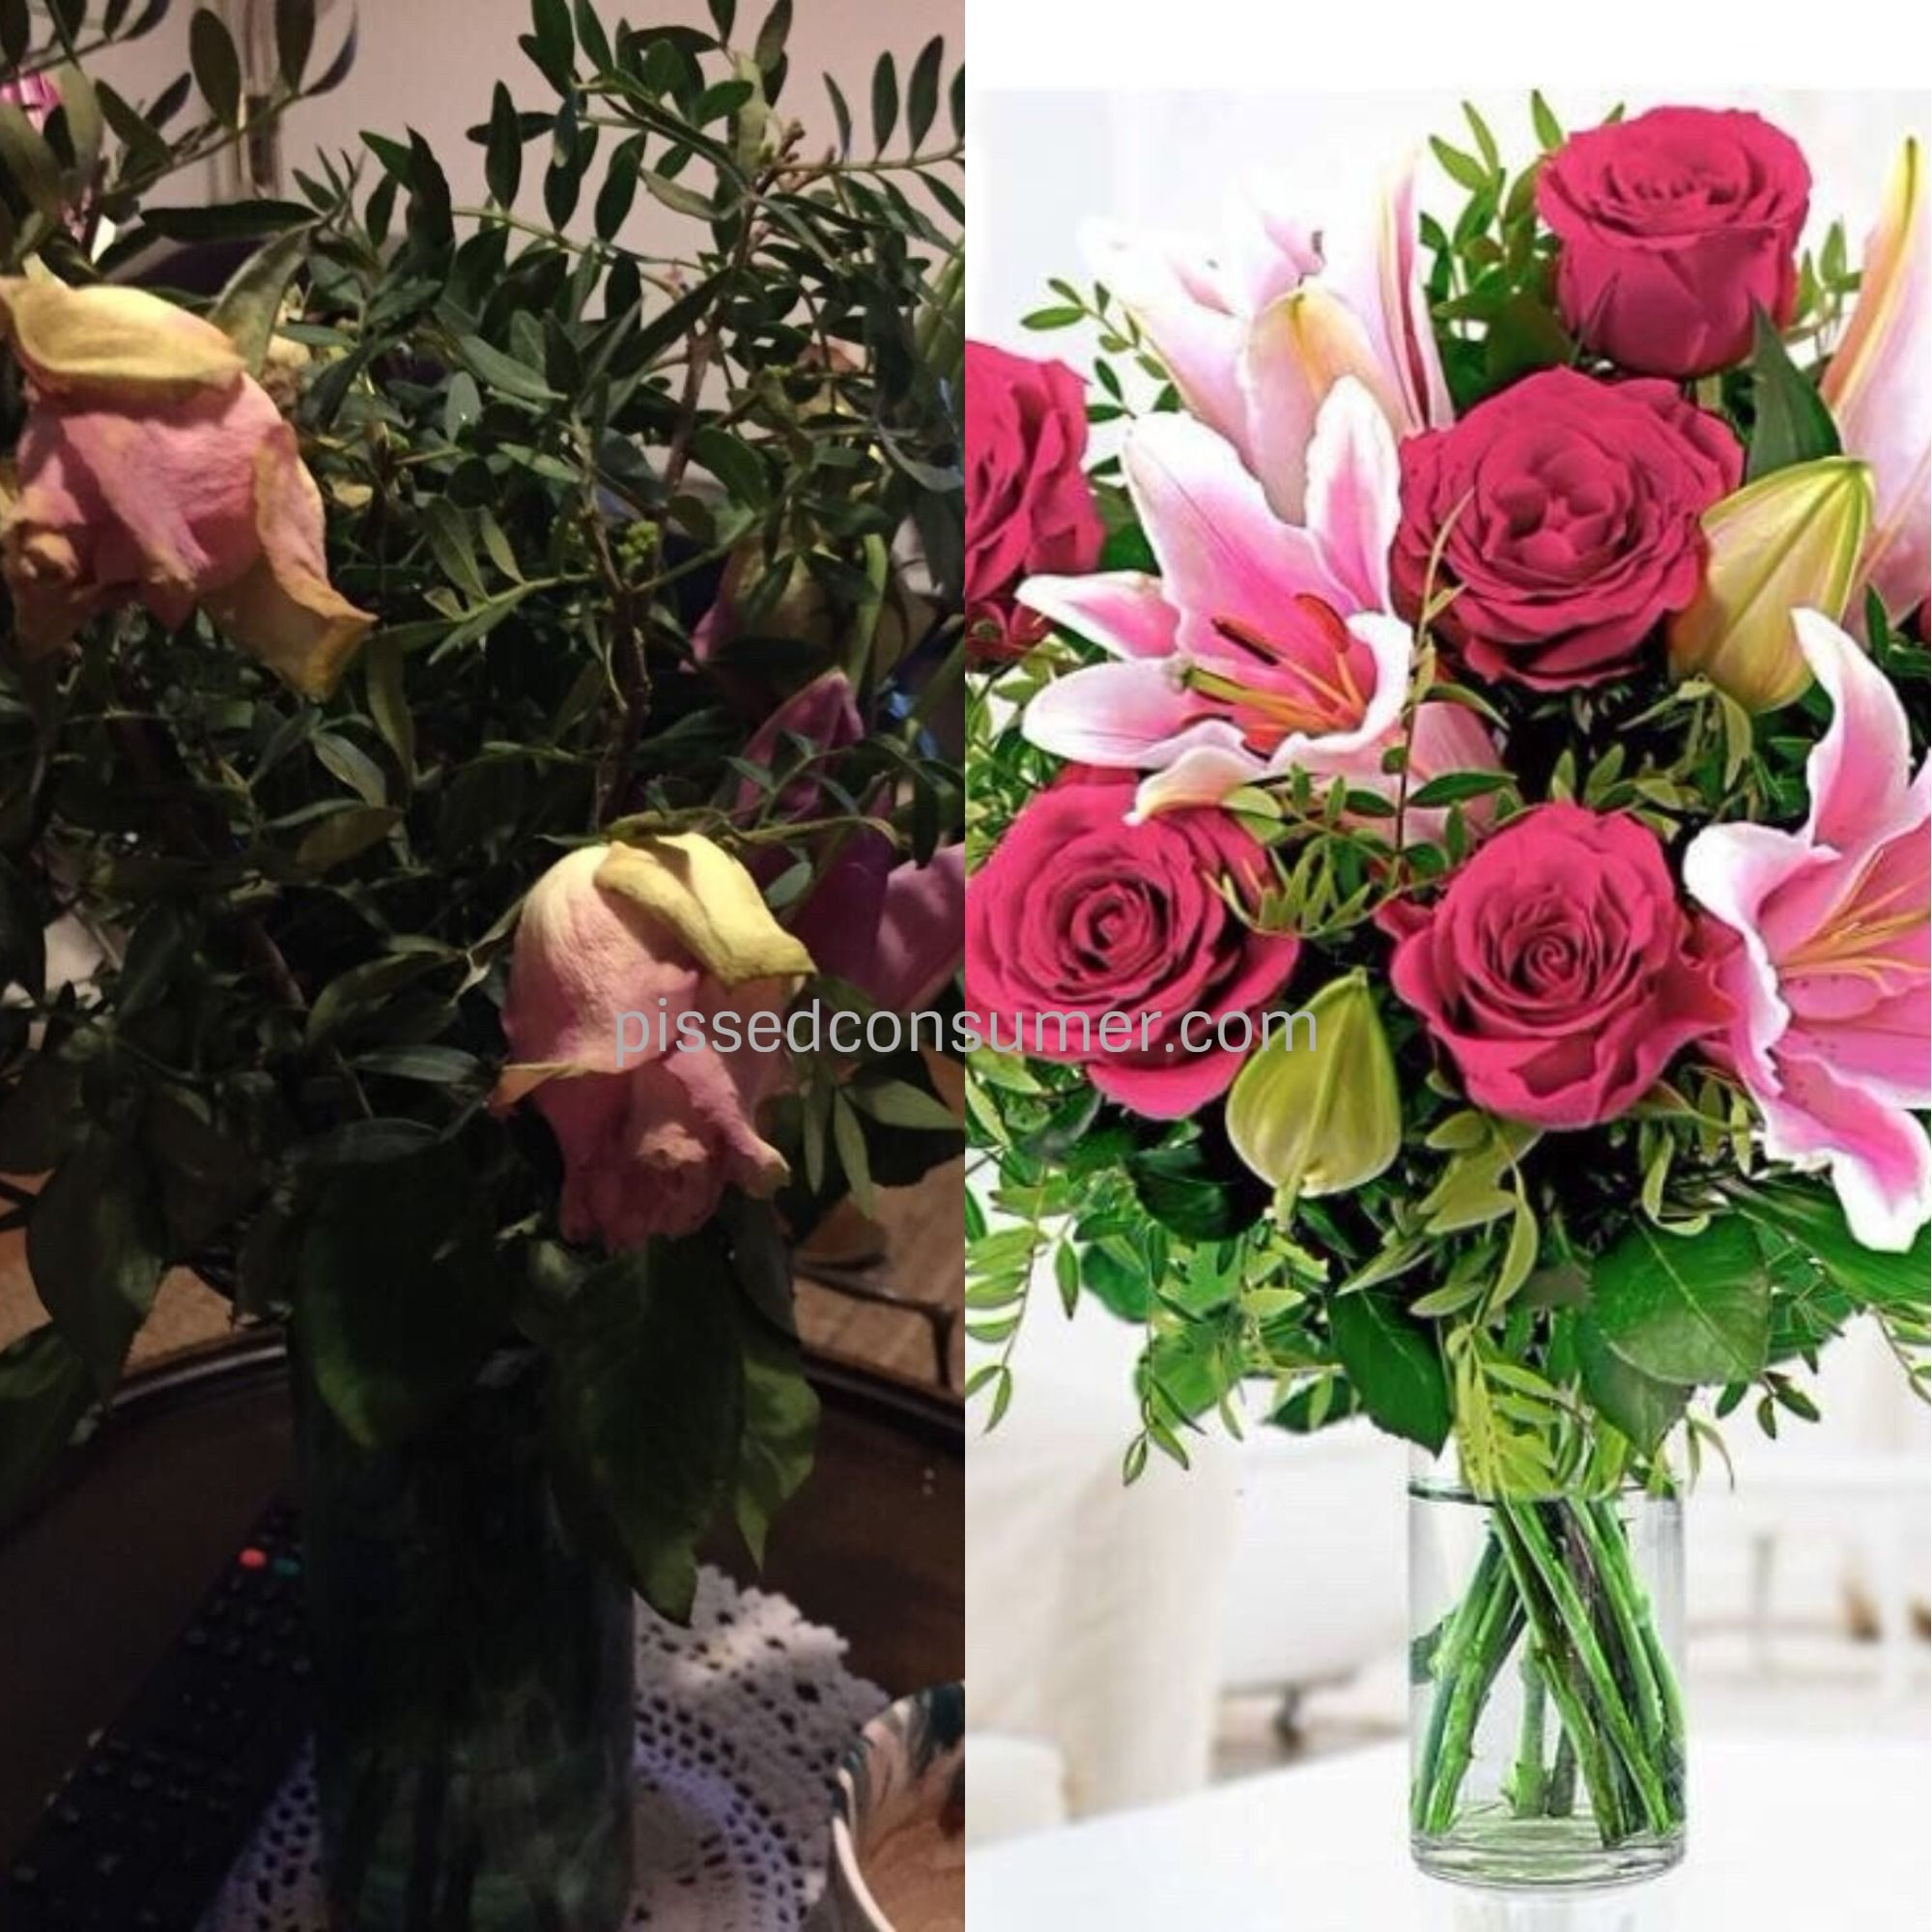 Flowers Online Reviews Fresh No Lilly S Just One Small Bud which Never Flowered Just D